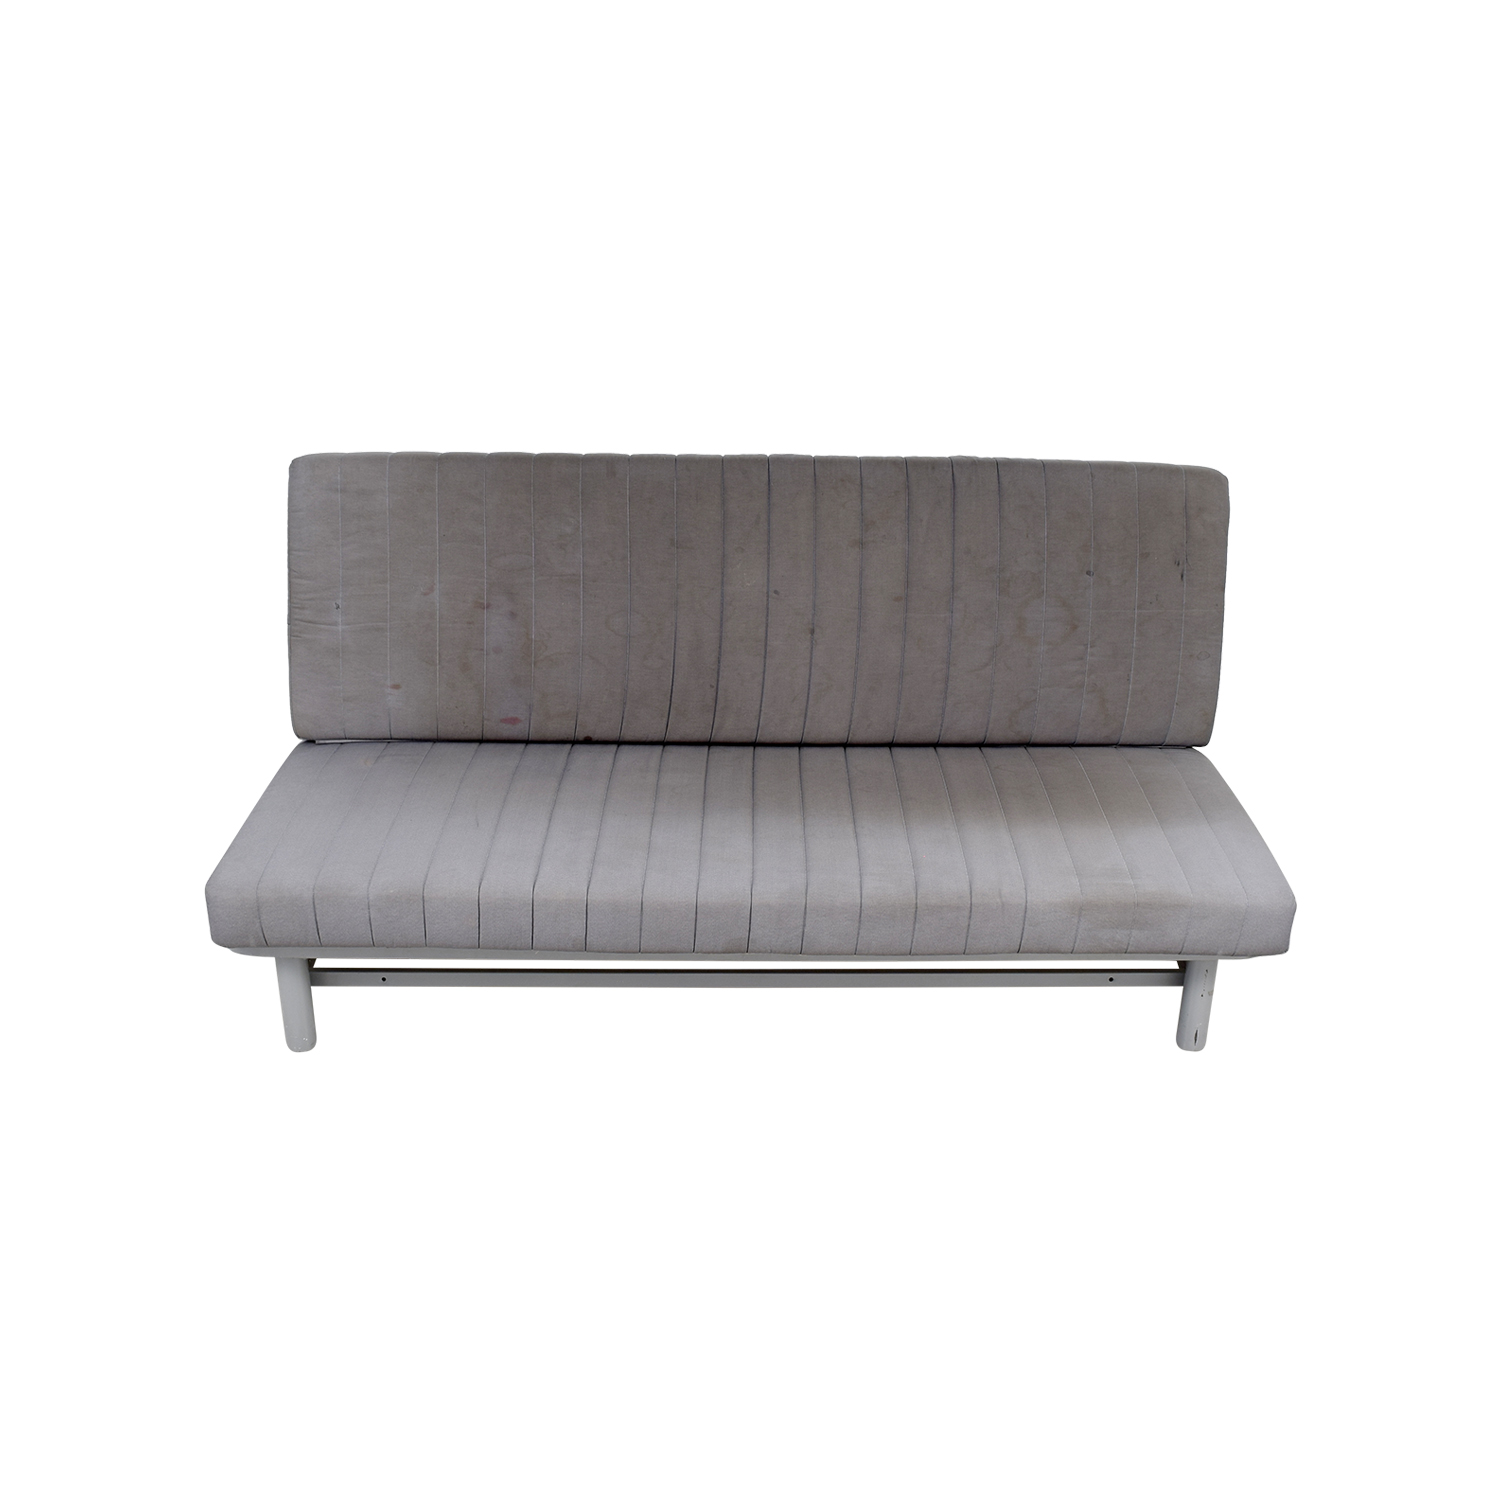 Sofa bed price junior fibre sofa bed bedore thesofa for Ikea gray sofa